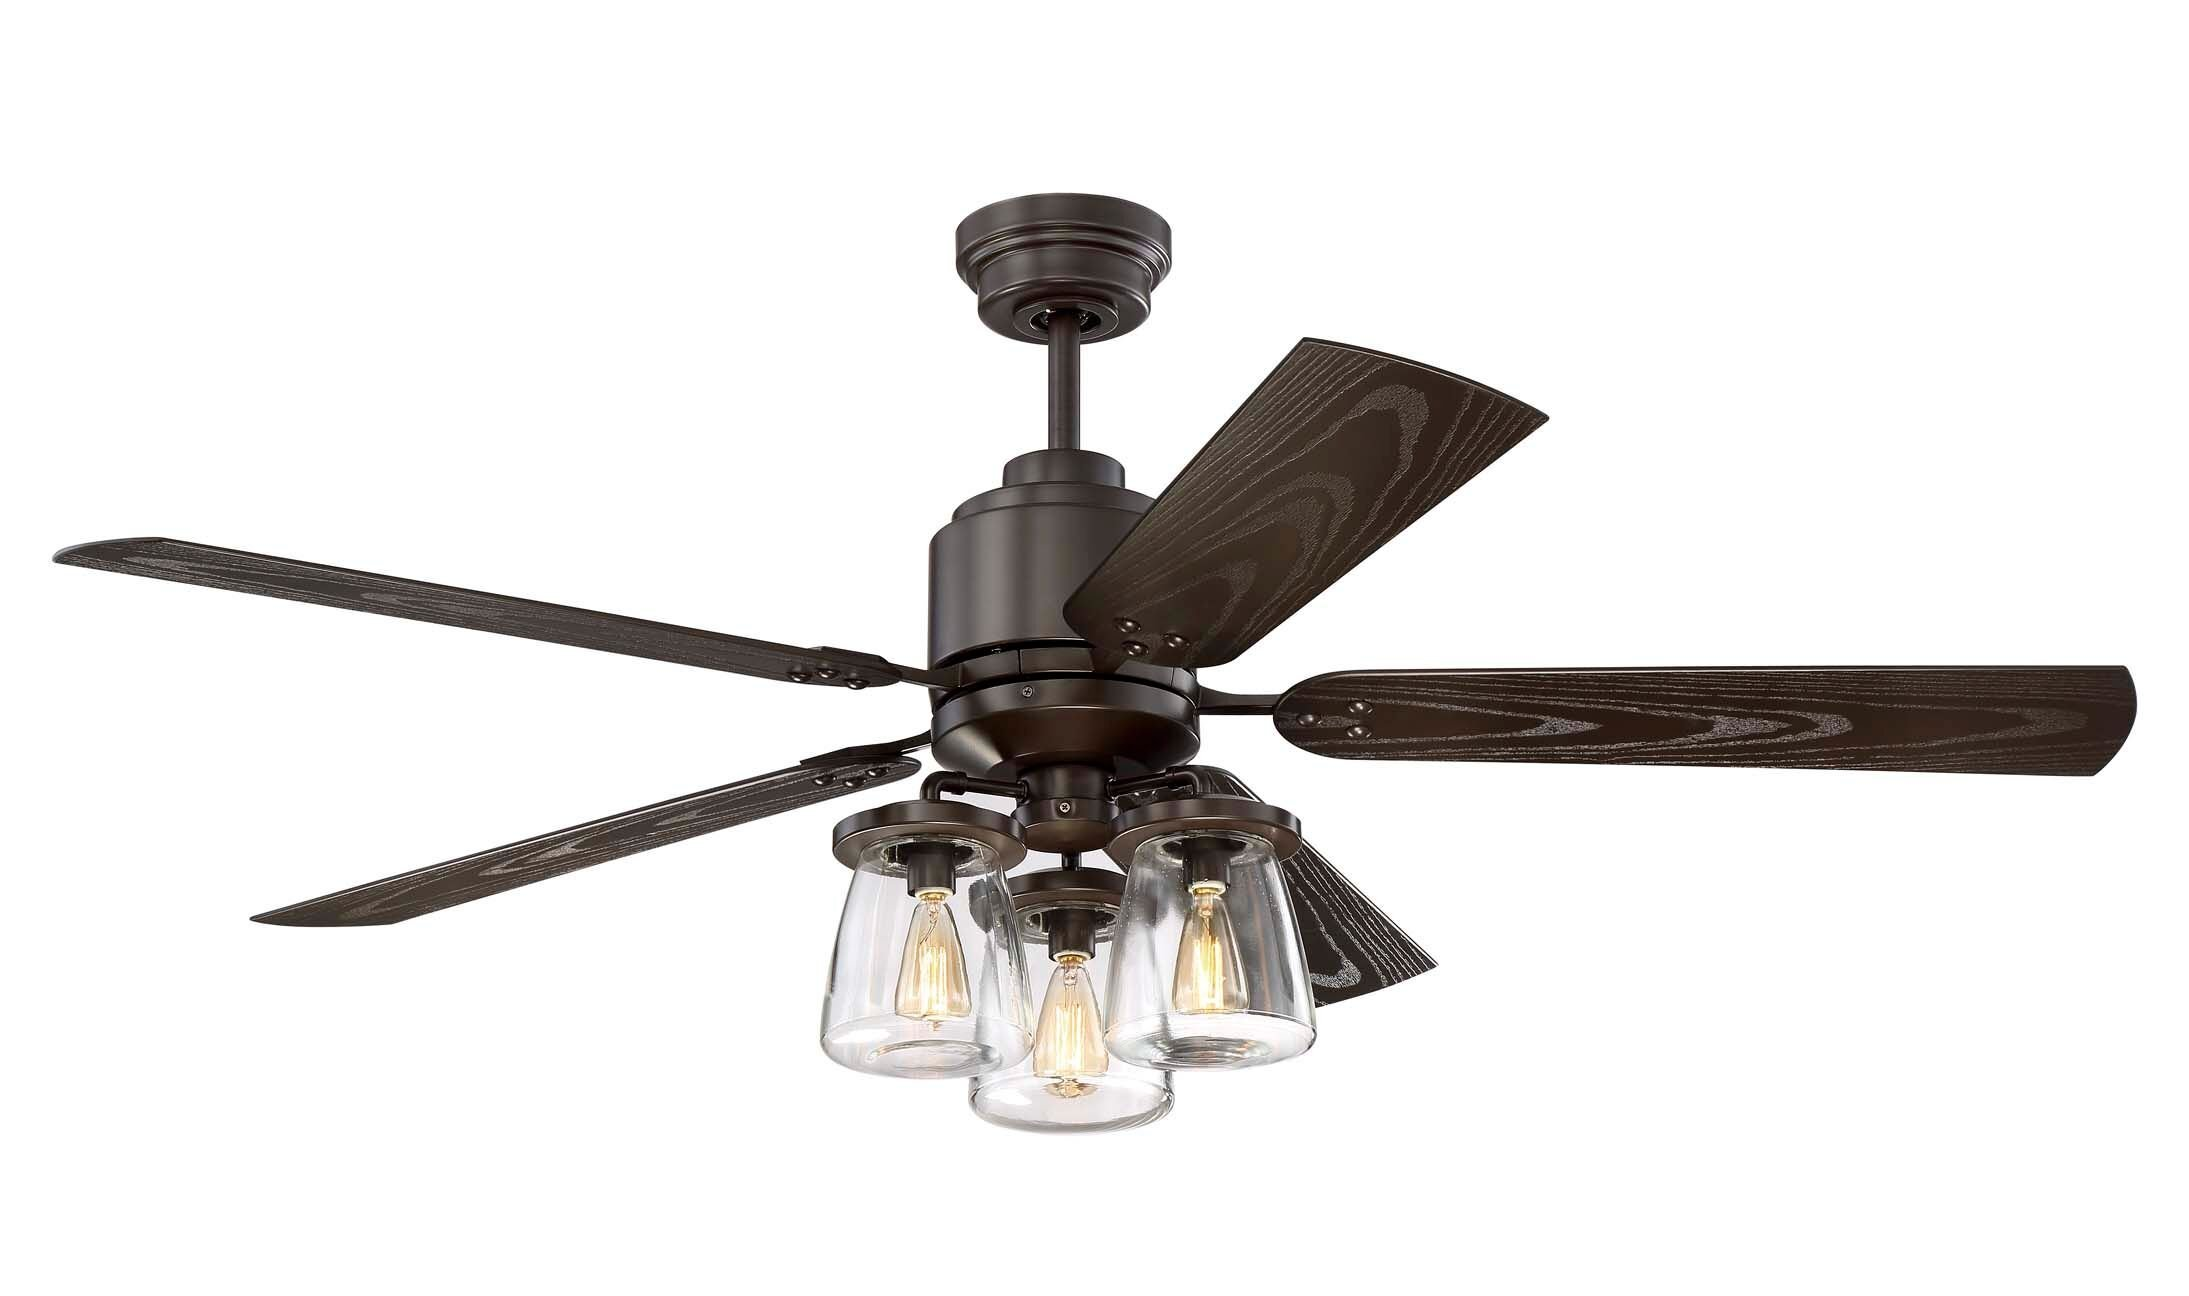 Litex COS52OSB5CR Andrus 52'' Indoor/Outdoor Ceiling Fan with Remote Control, Five Dark Bronze Blades and Three Light Kit with Clear Glass